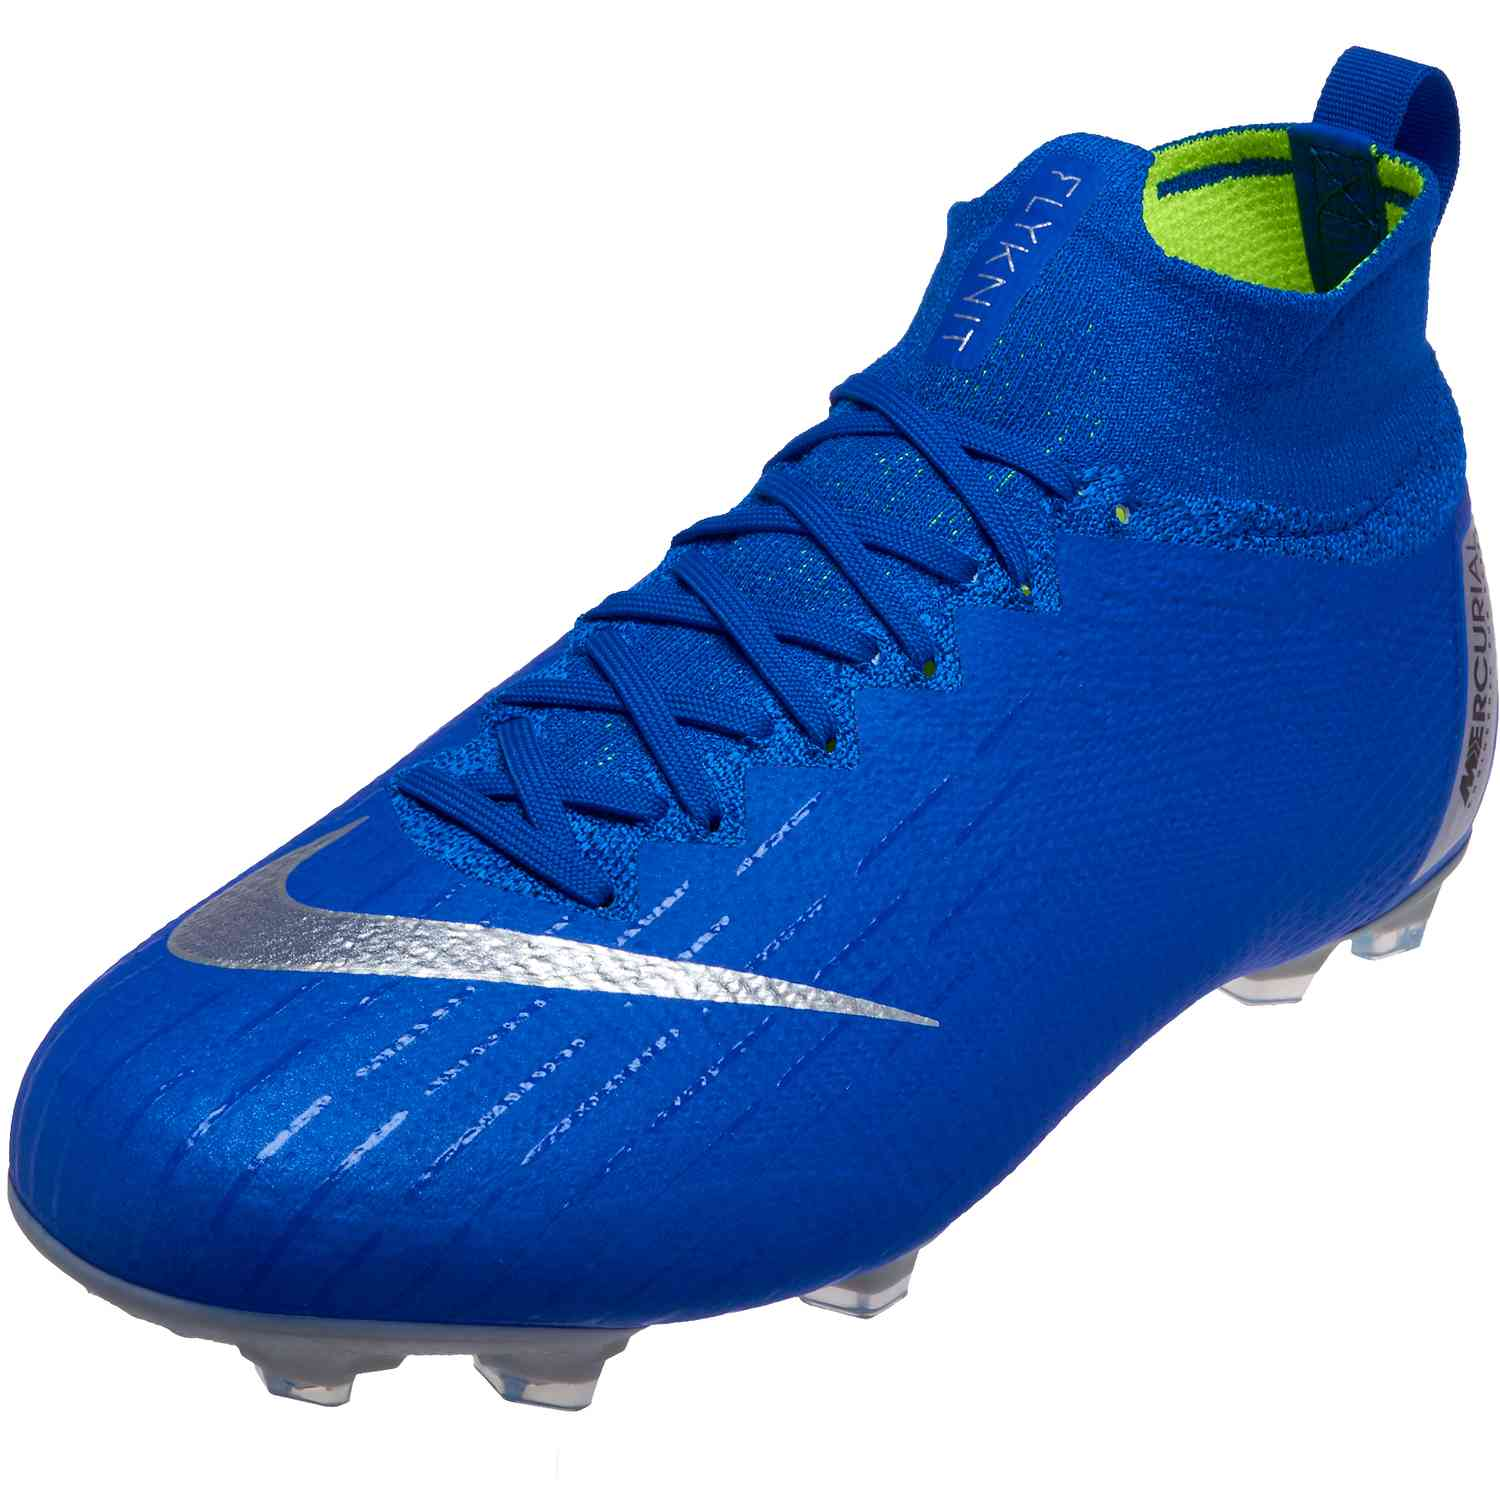 aa9988655 Nike Mercurial Superfly 6 Elite FG – Youth – Racer Blue/Metallic  Silver/Black/Volt